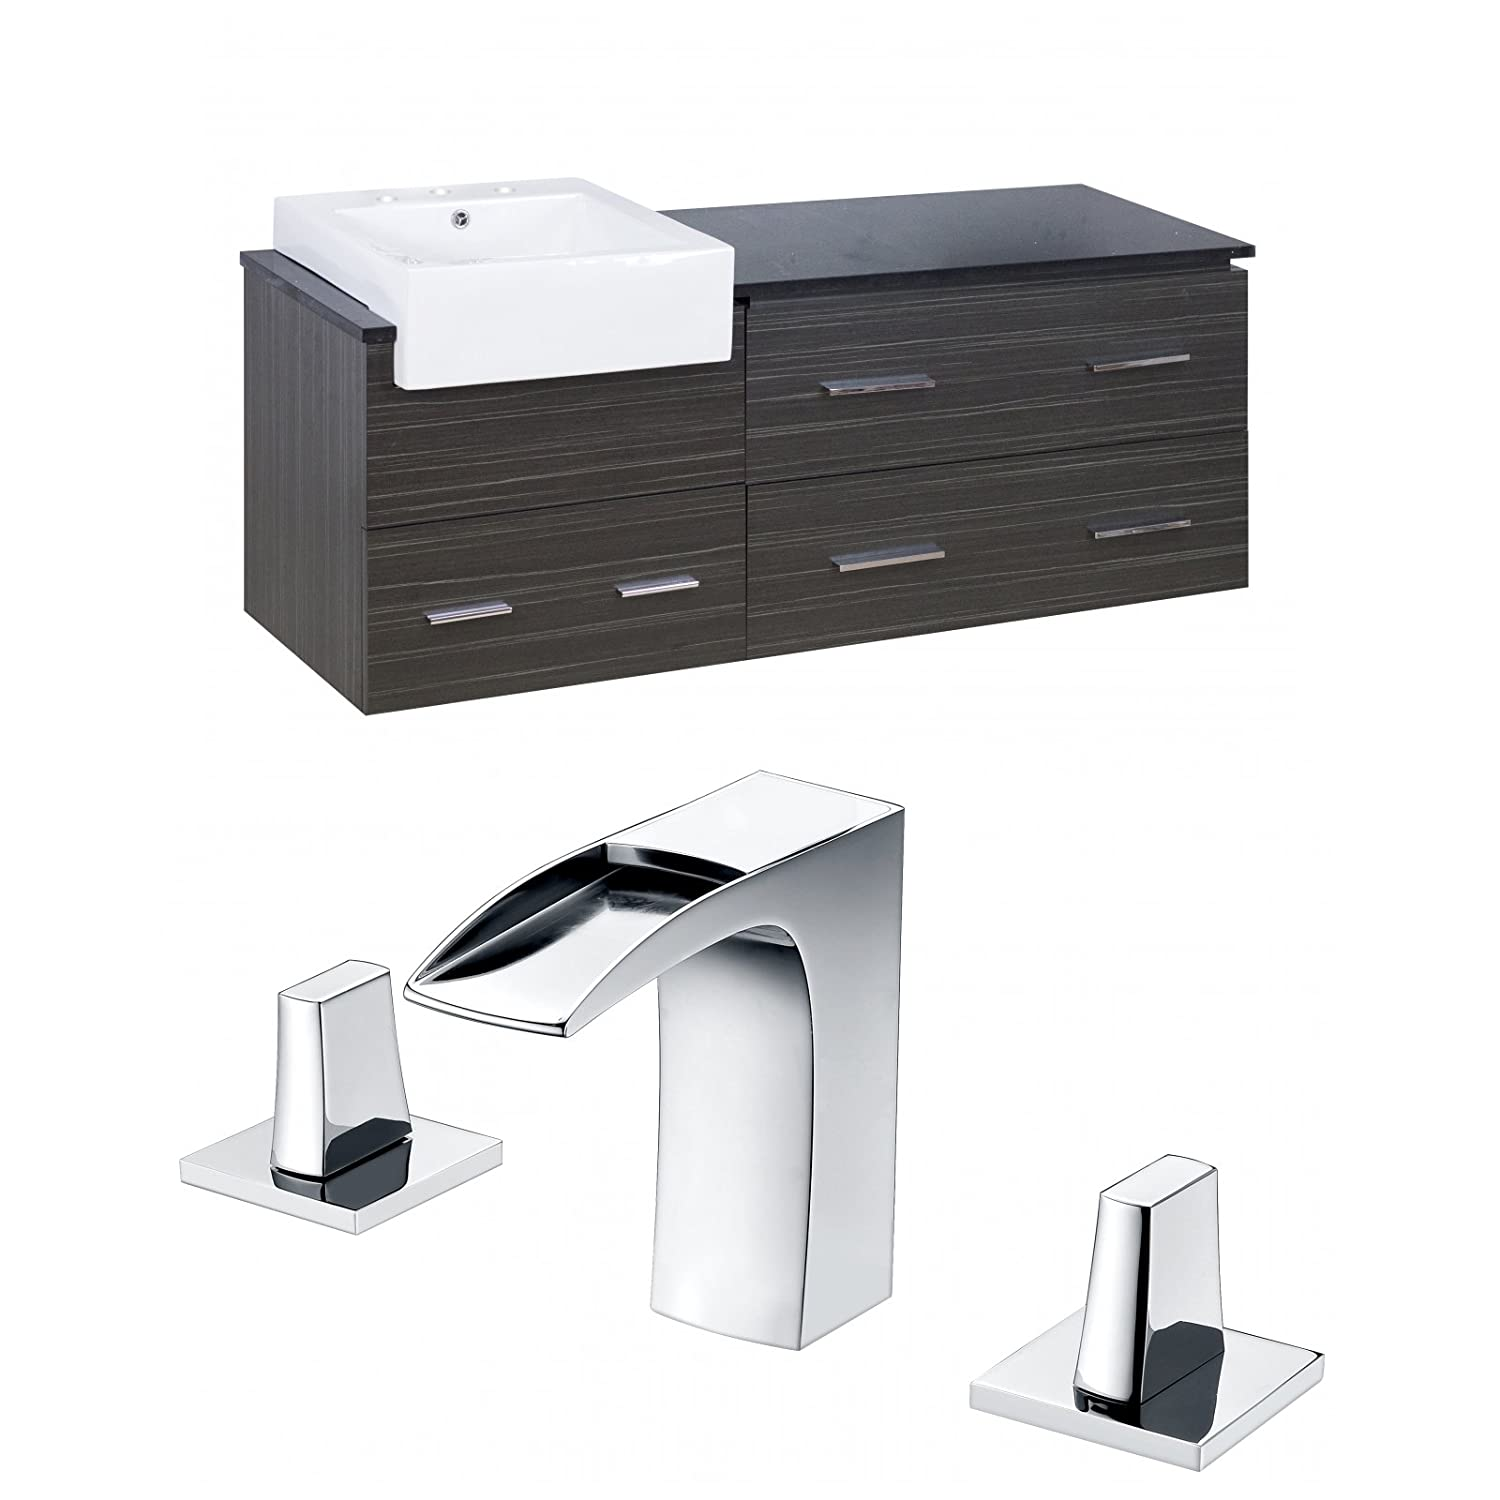 American Imaginations AI-999-10594 Modern Plywood Vanity Set in Grey with 8' CUPC Faucet, Dawn Grey